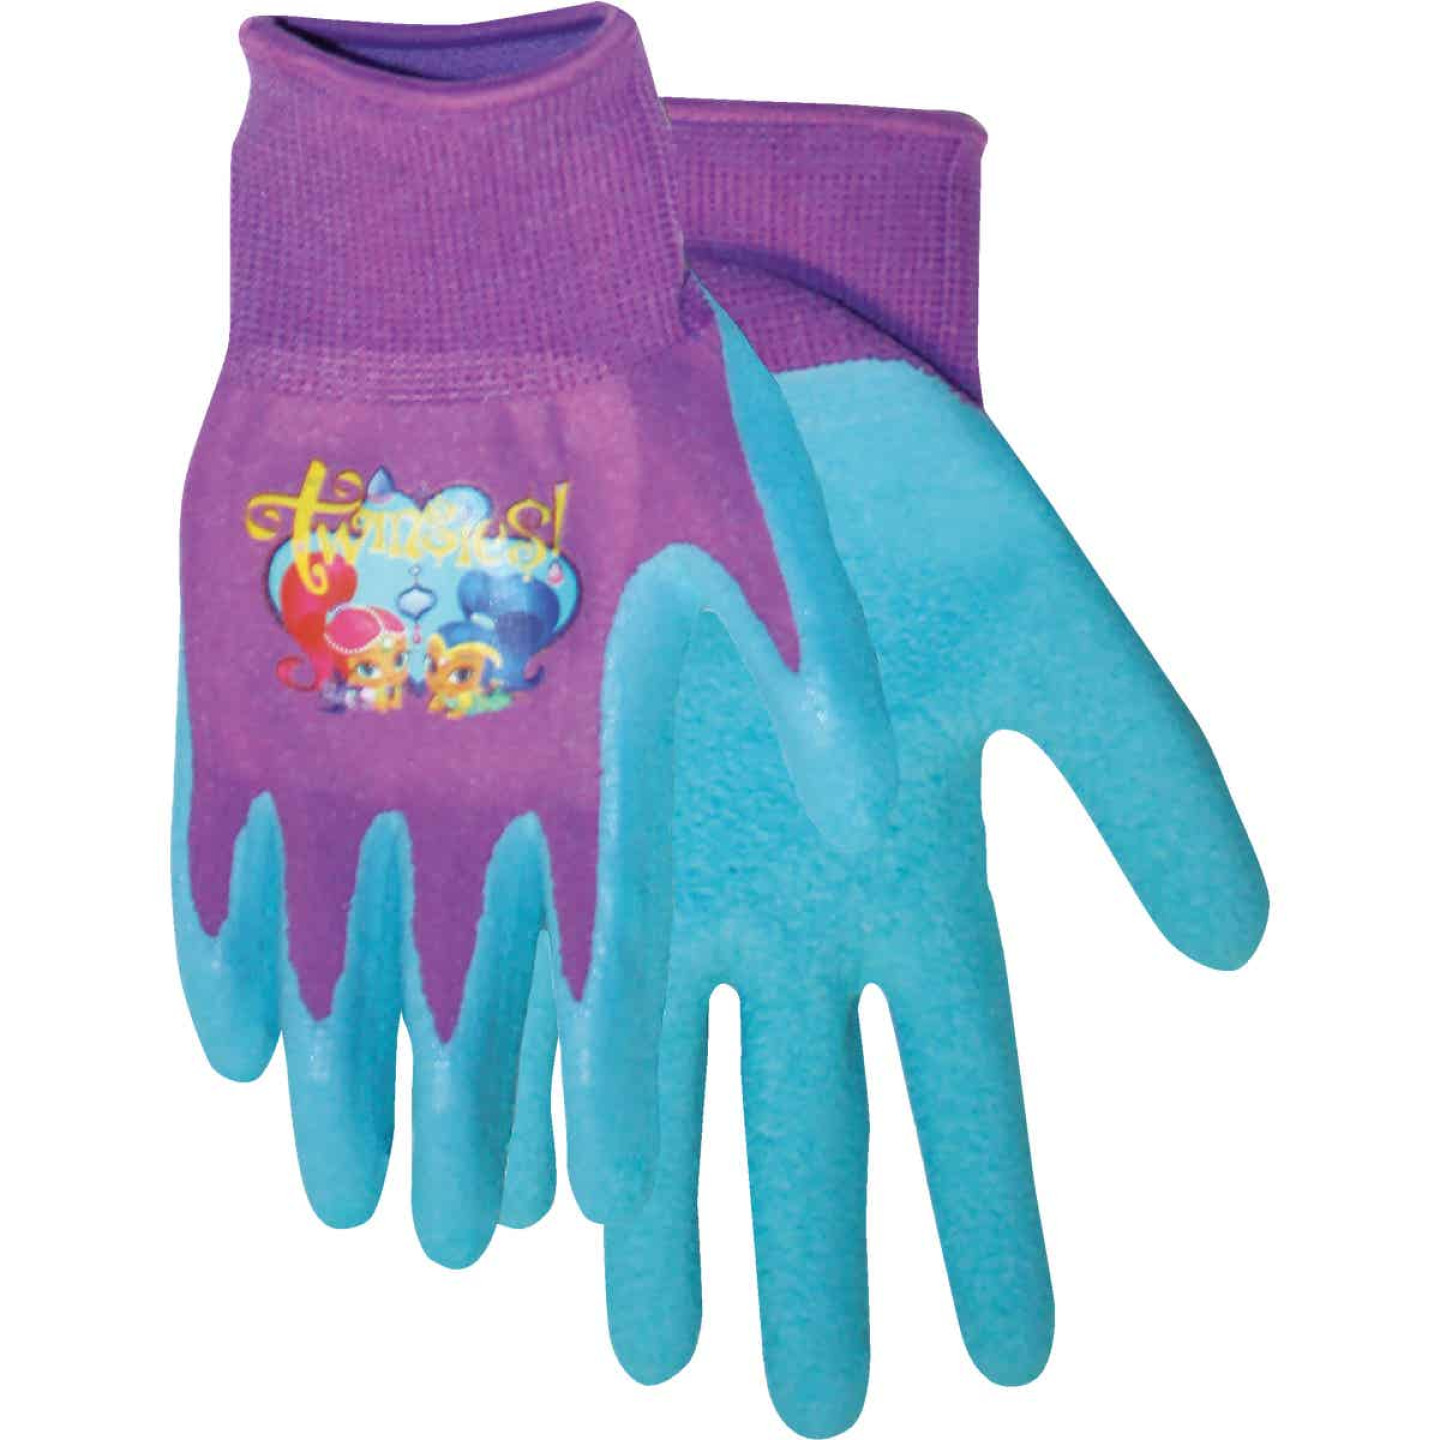 Nickelodeon Shimmer & Shine Toddler Polyester Glove Image 1